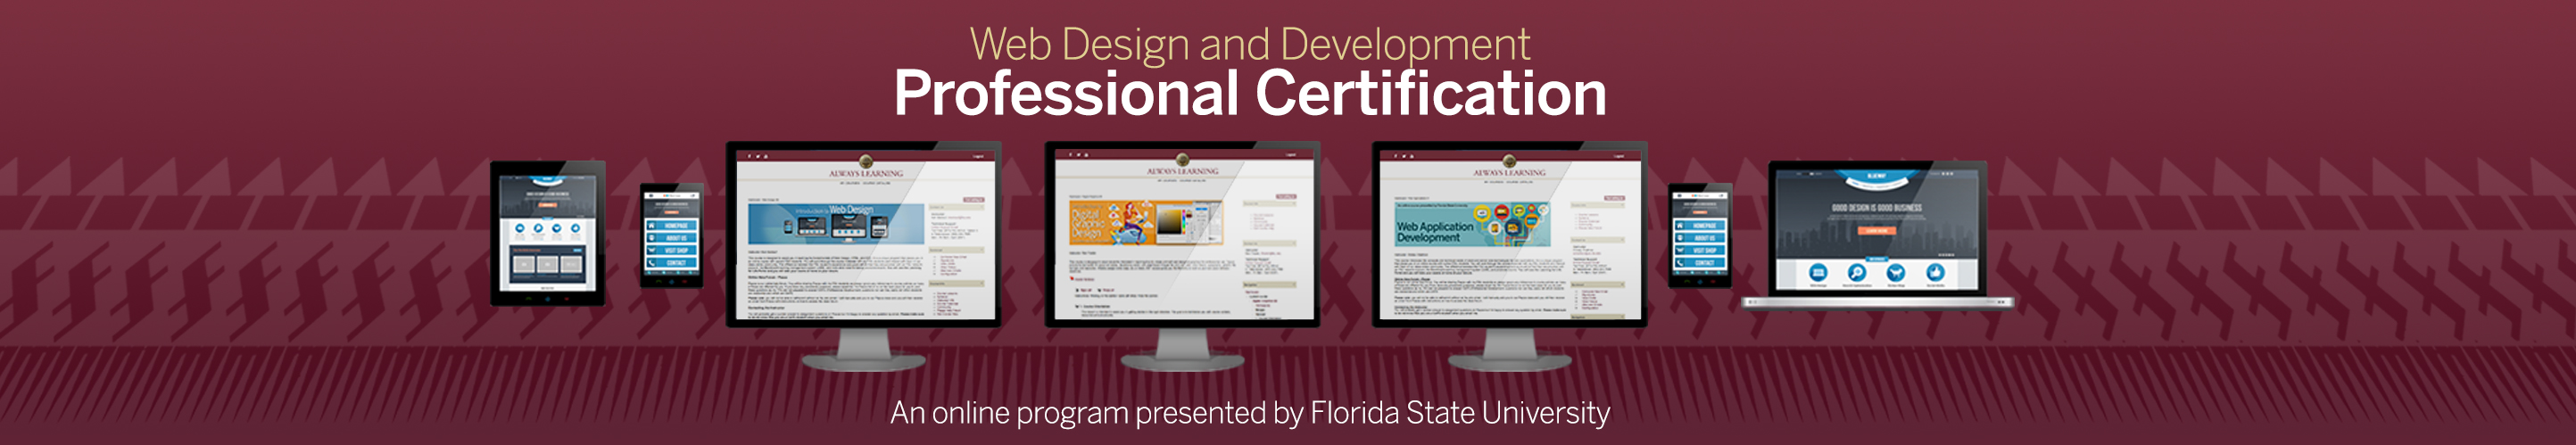 Web design and development professional certification florida web design and development professional certification florida state university learning for life xflitez Gallery